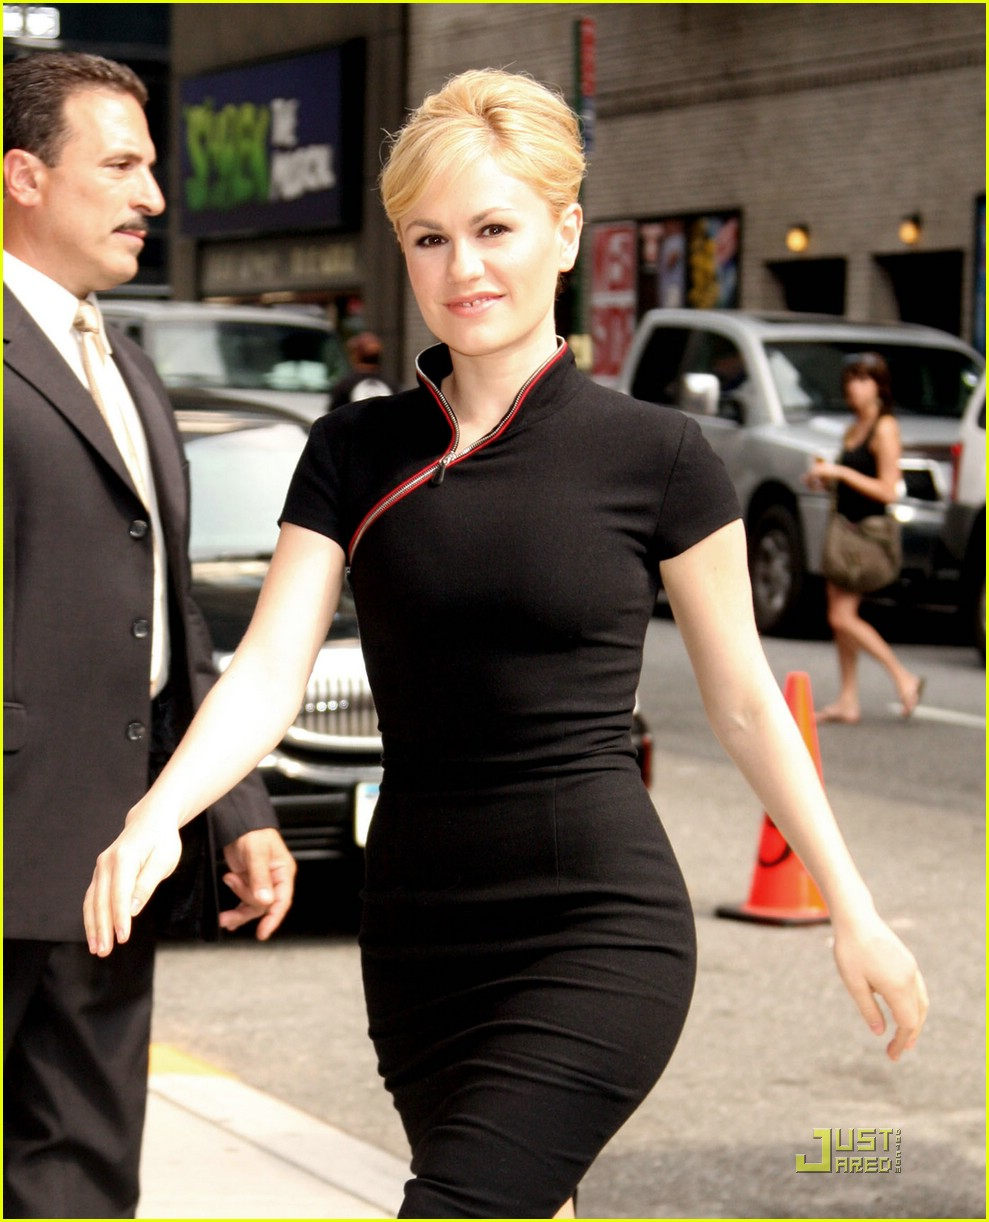 Full Sized Photo of an... Anna Paquin